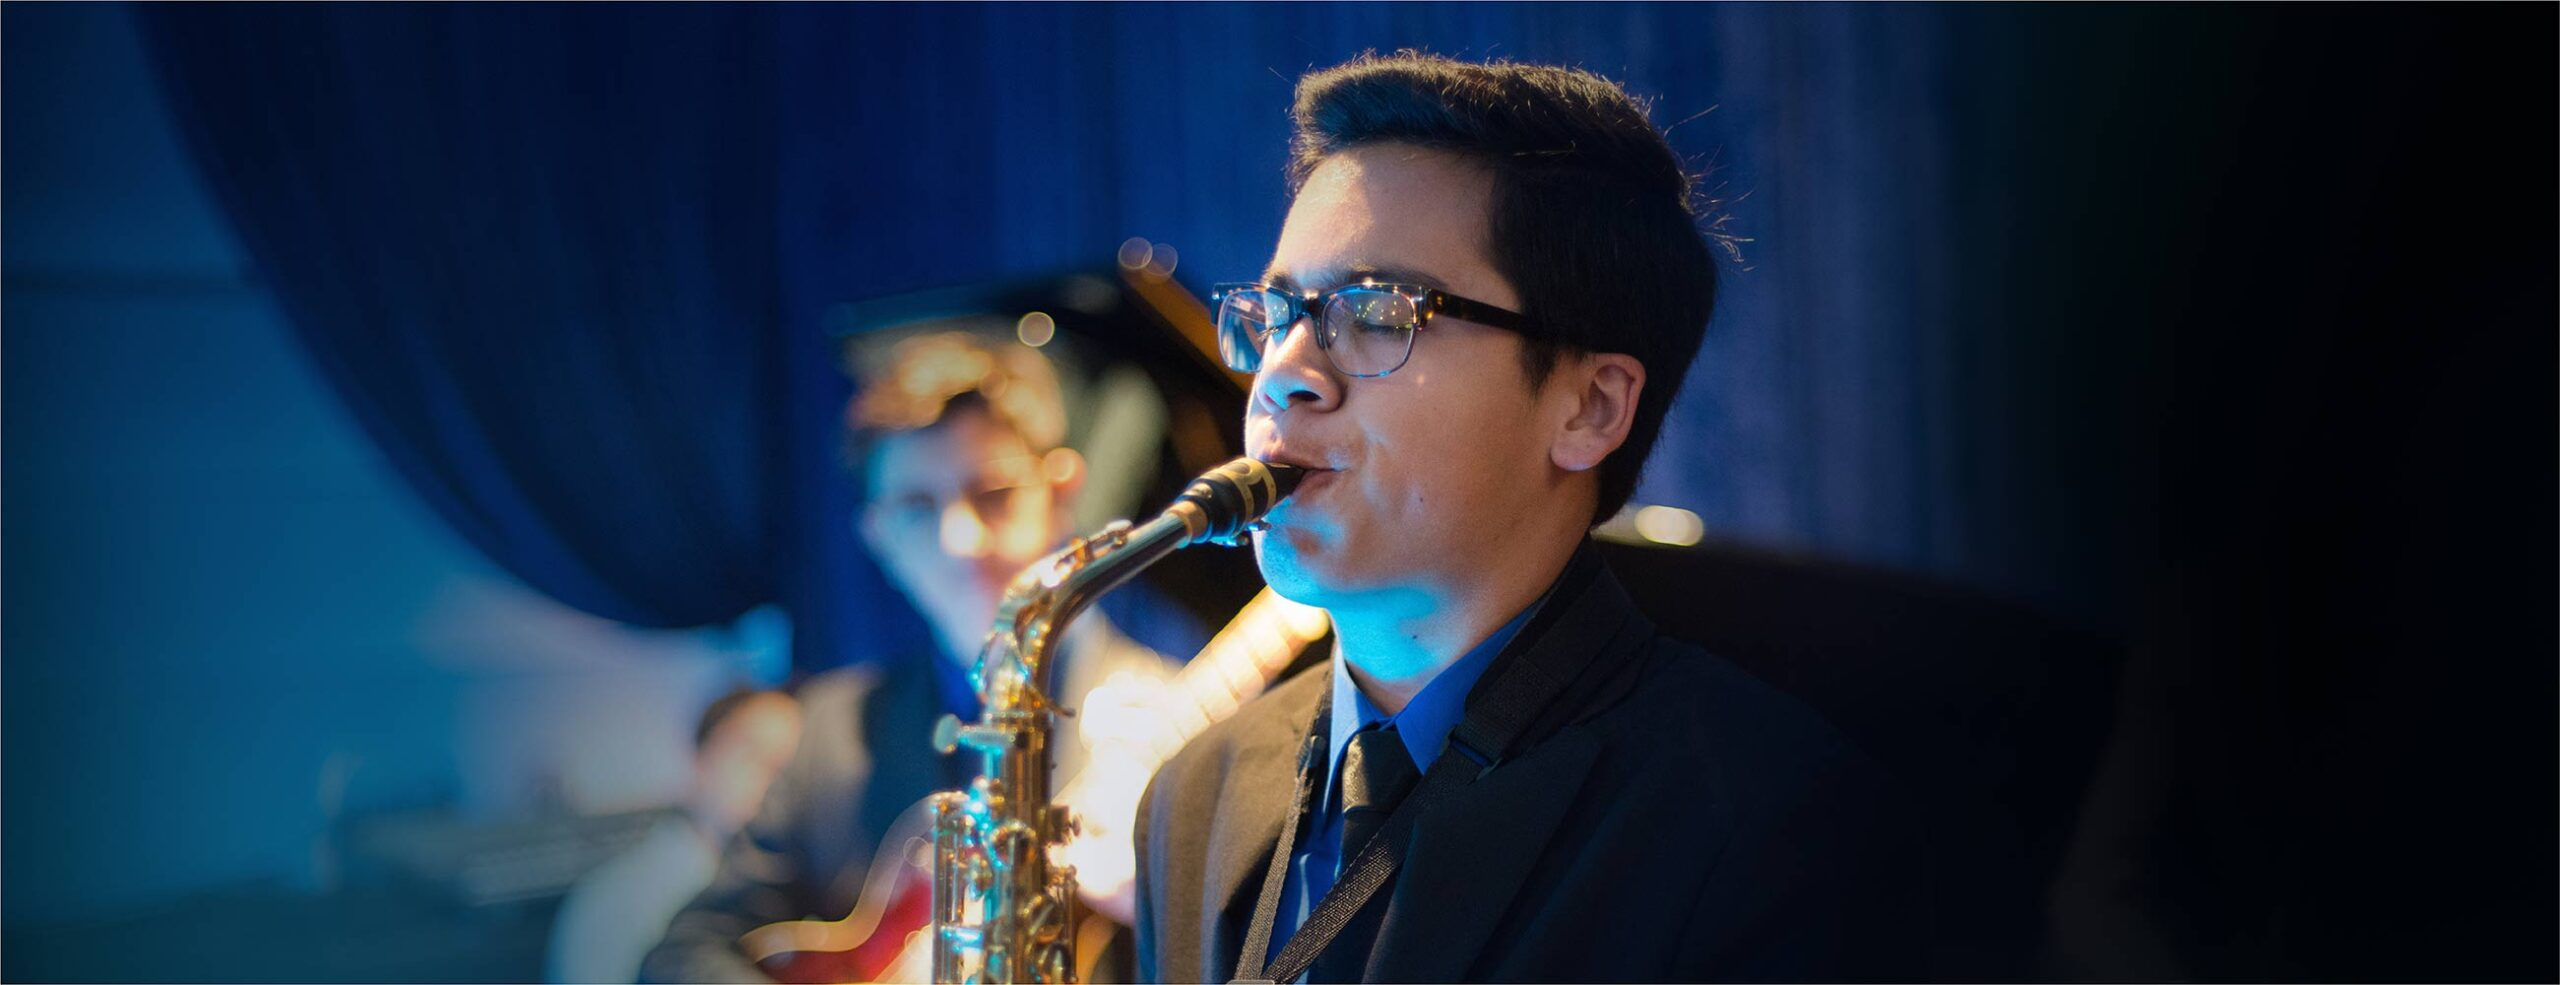 Saxophone soloist performing